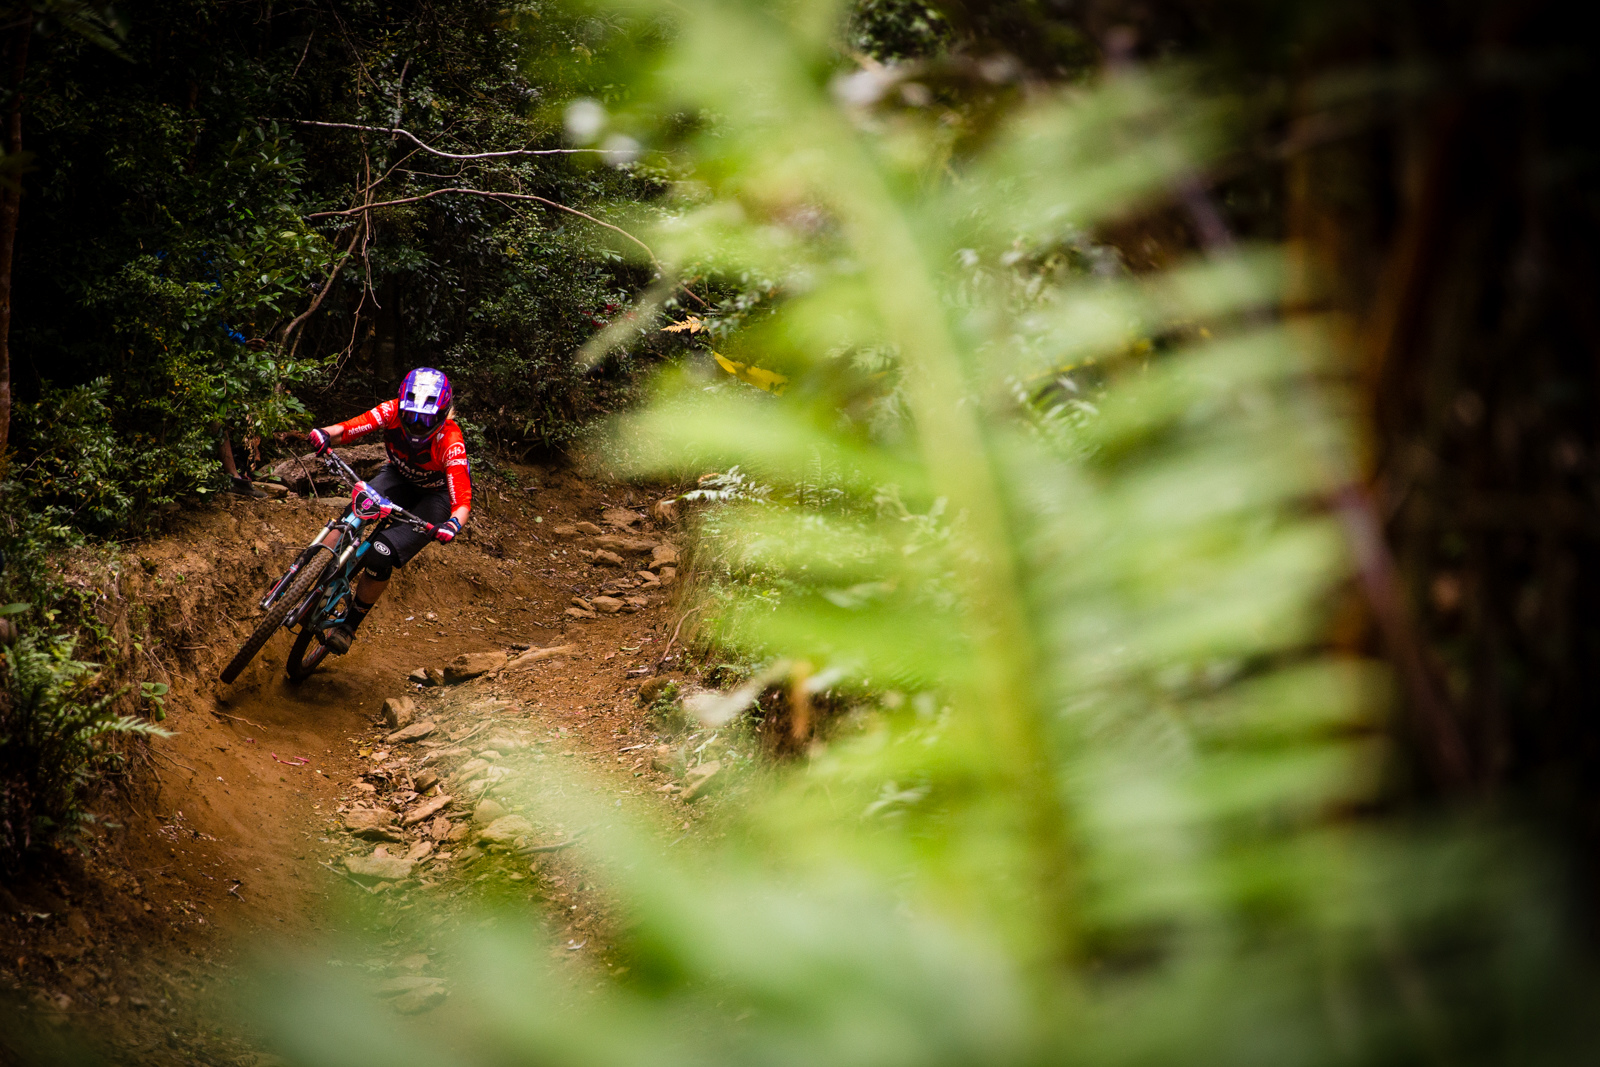 Anita Gehrig got her best EWS result this weekend with a 5th place overall and her best stage result with a 3rd place on the third stage of the weekend.